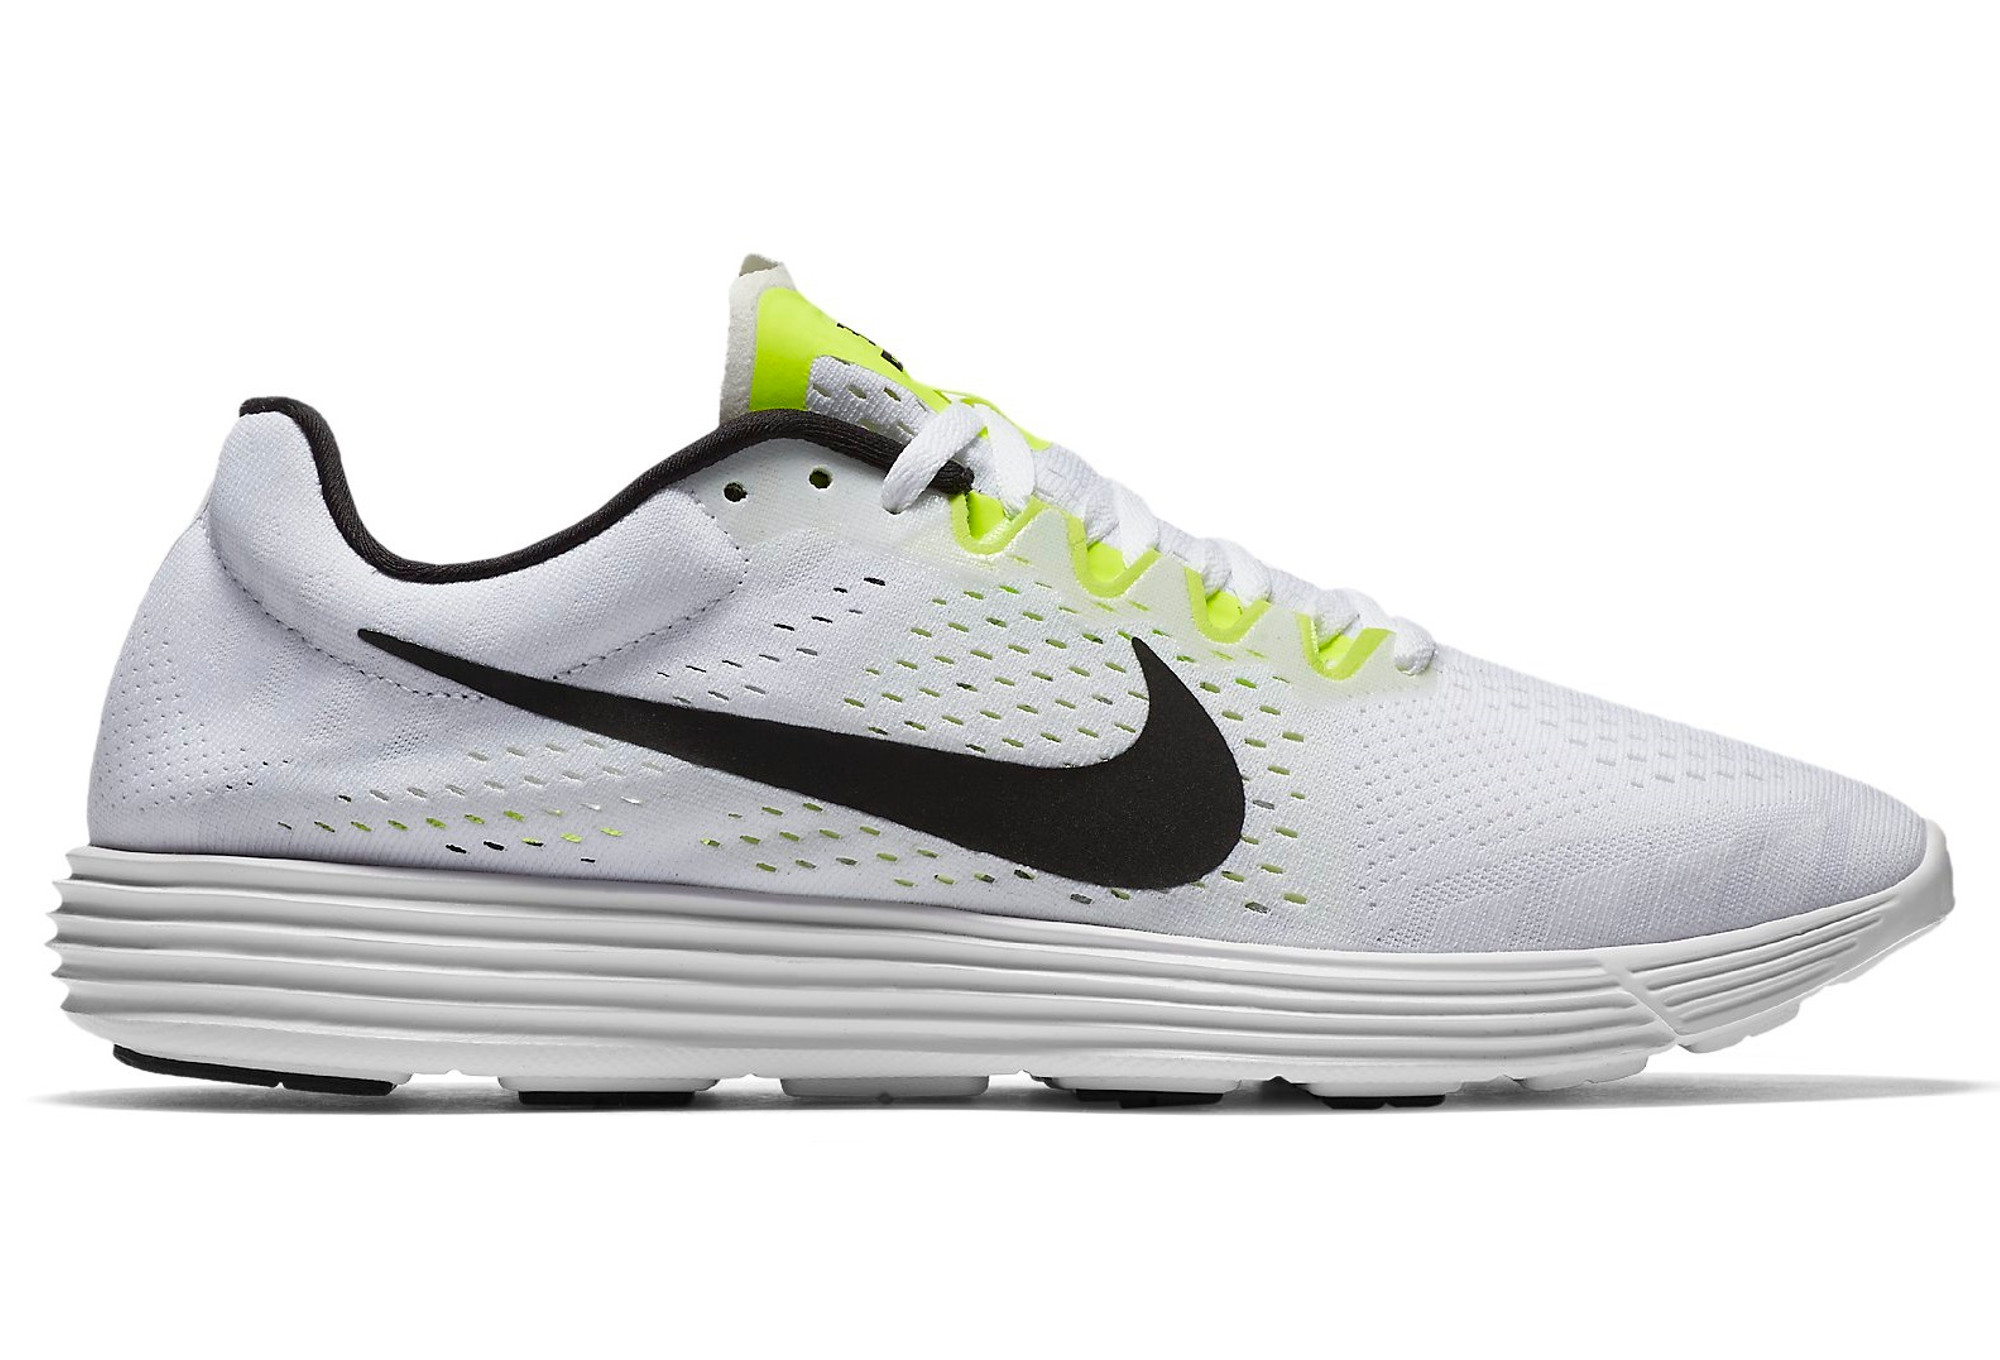 999b30a08571 NIKE LUNARACER 4 White Black Yellow Unisex